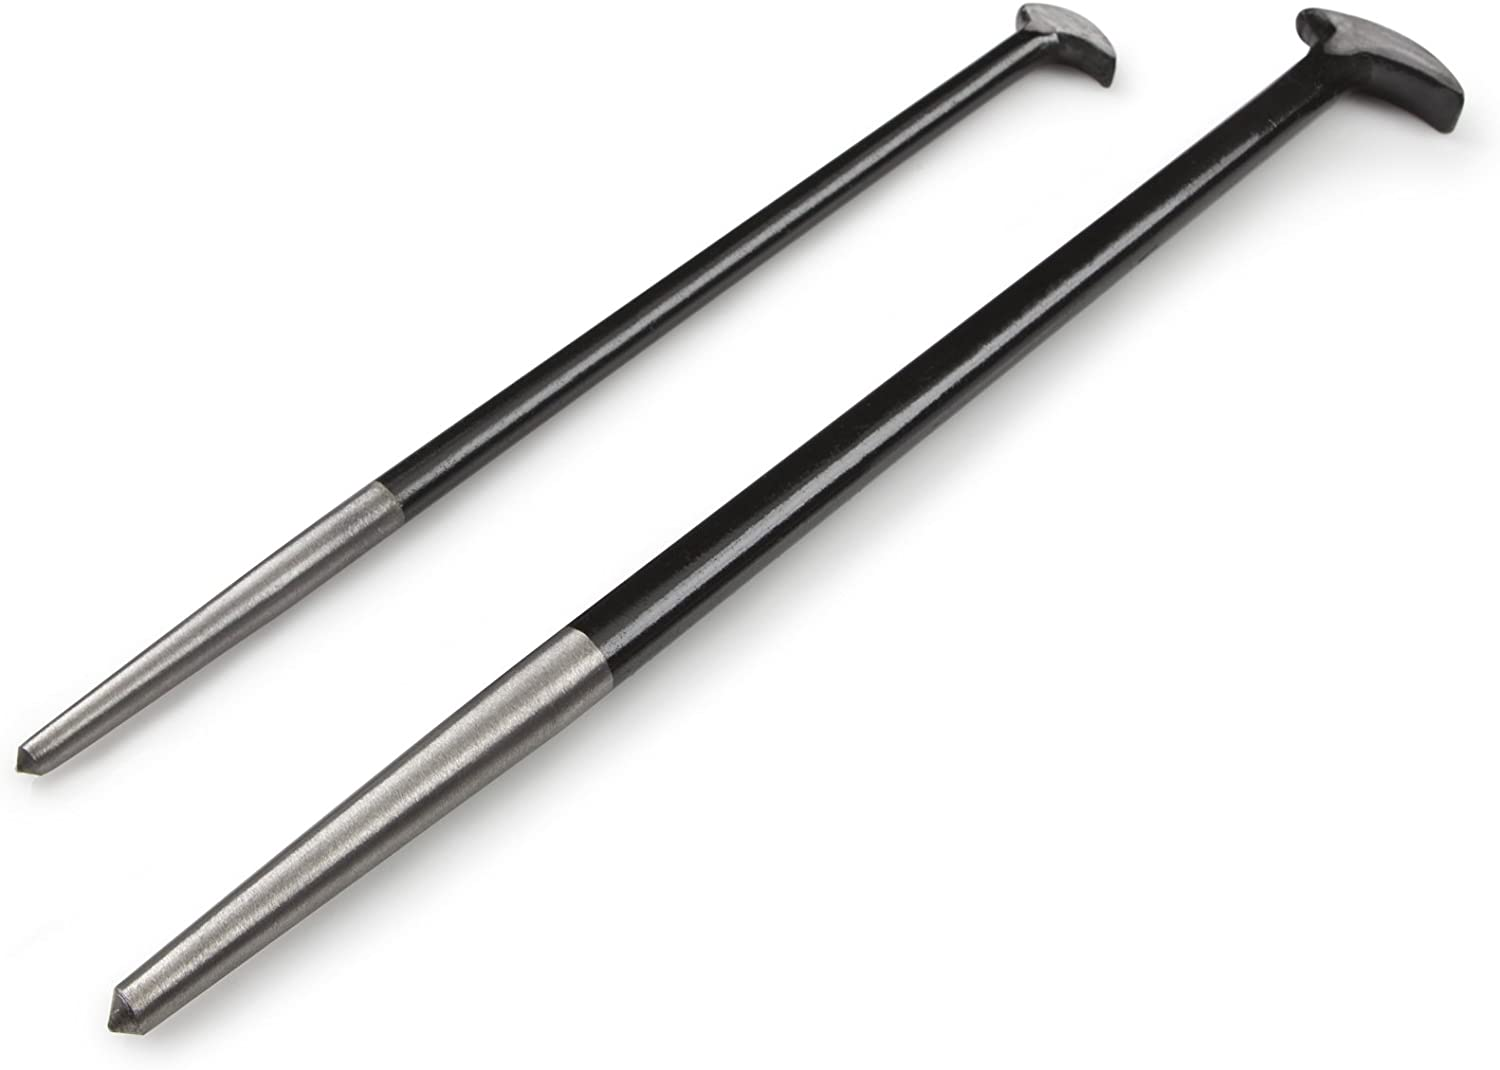 TEKTON 3344 Rolling Head Pry Bar Set 2-Piece